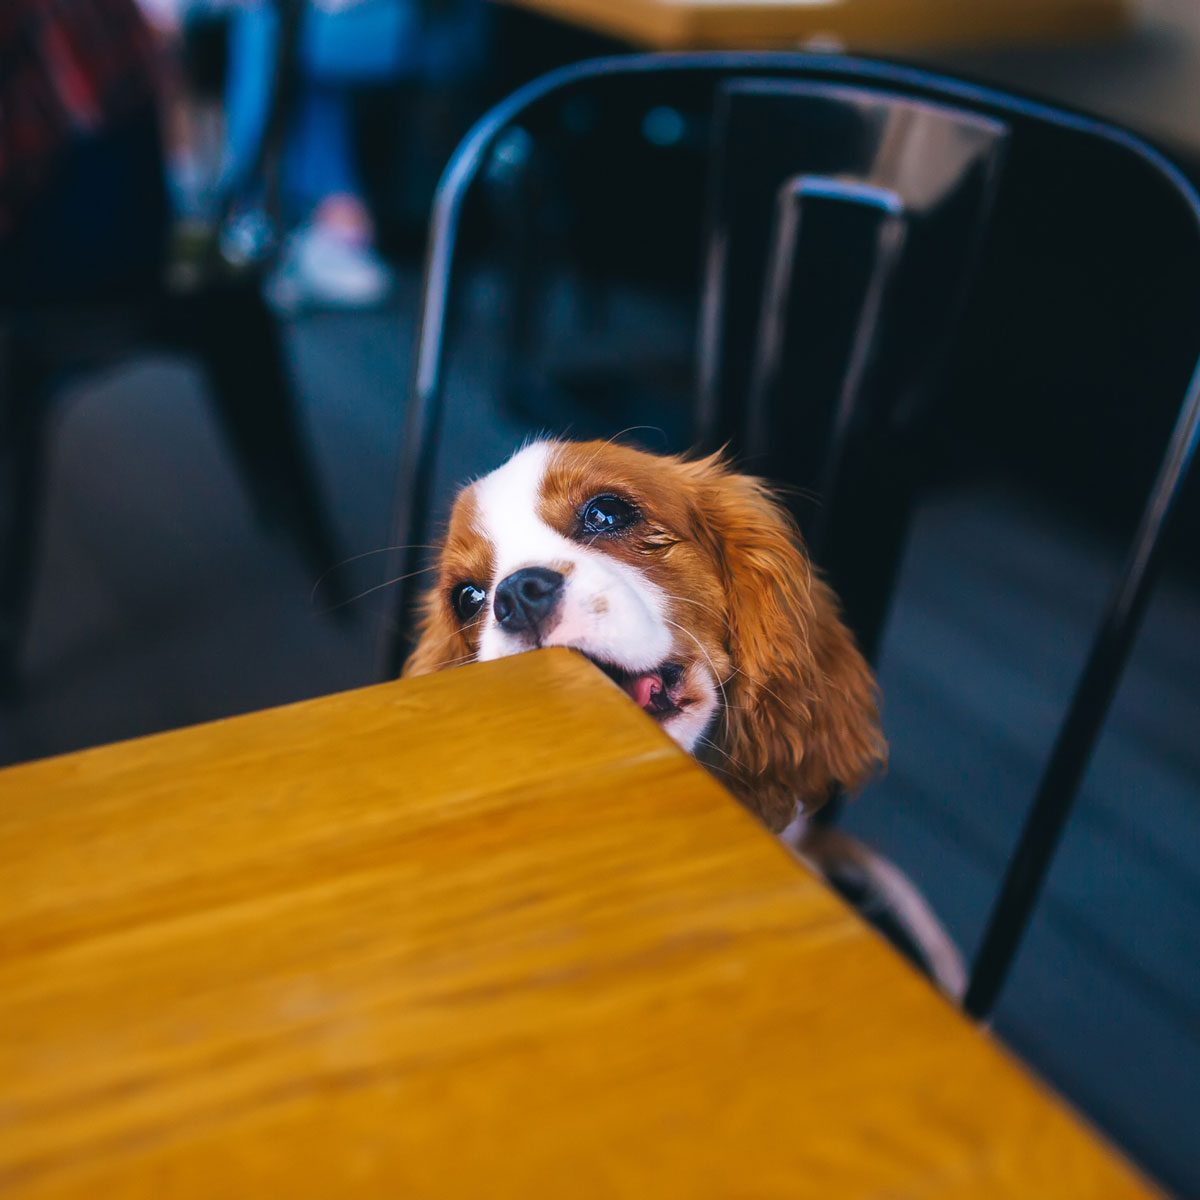 Dog Chewing A Table Gettyimages 1257391994